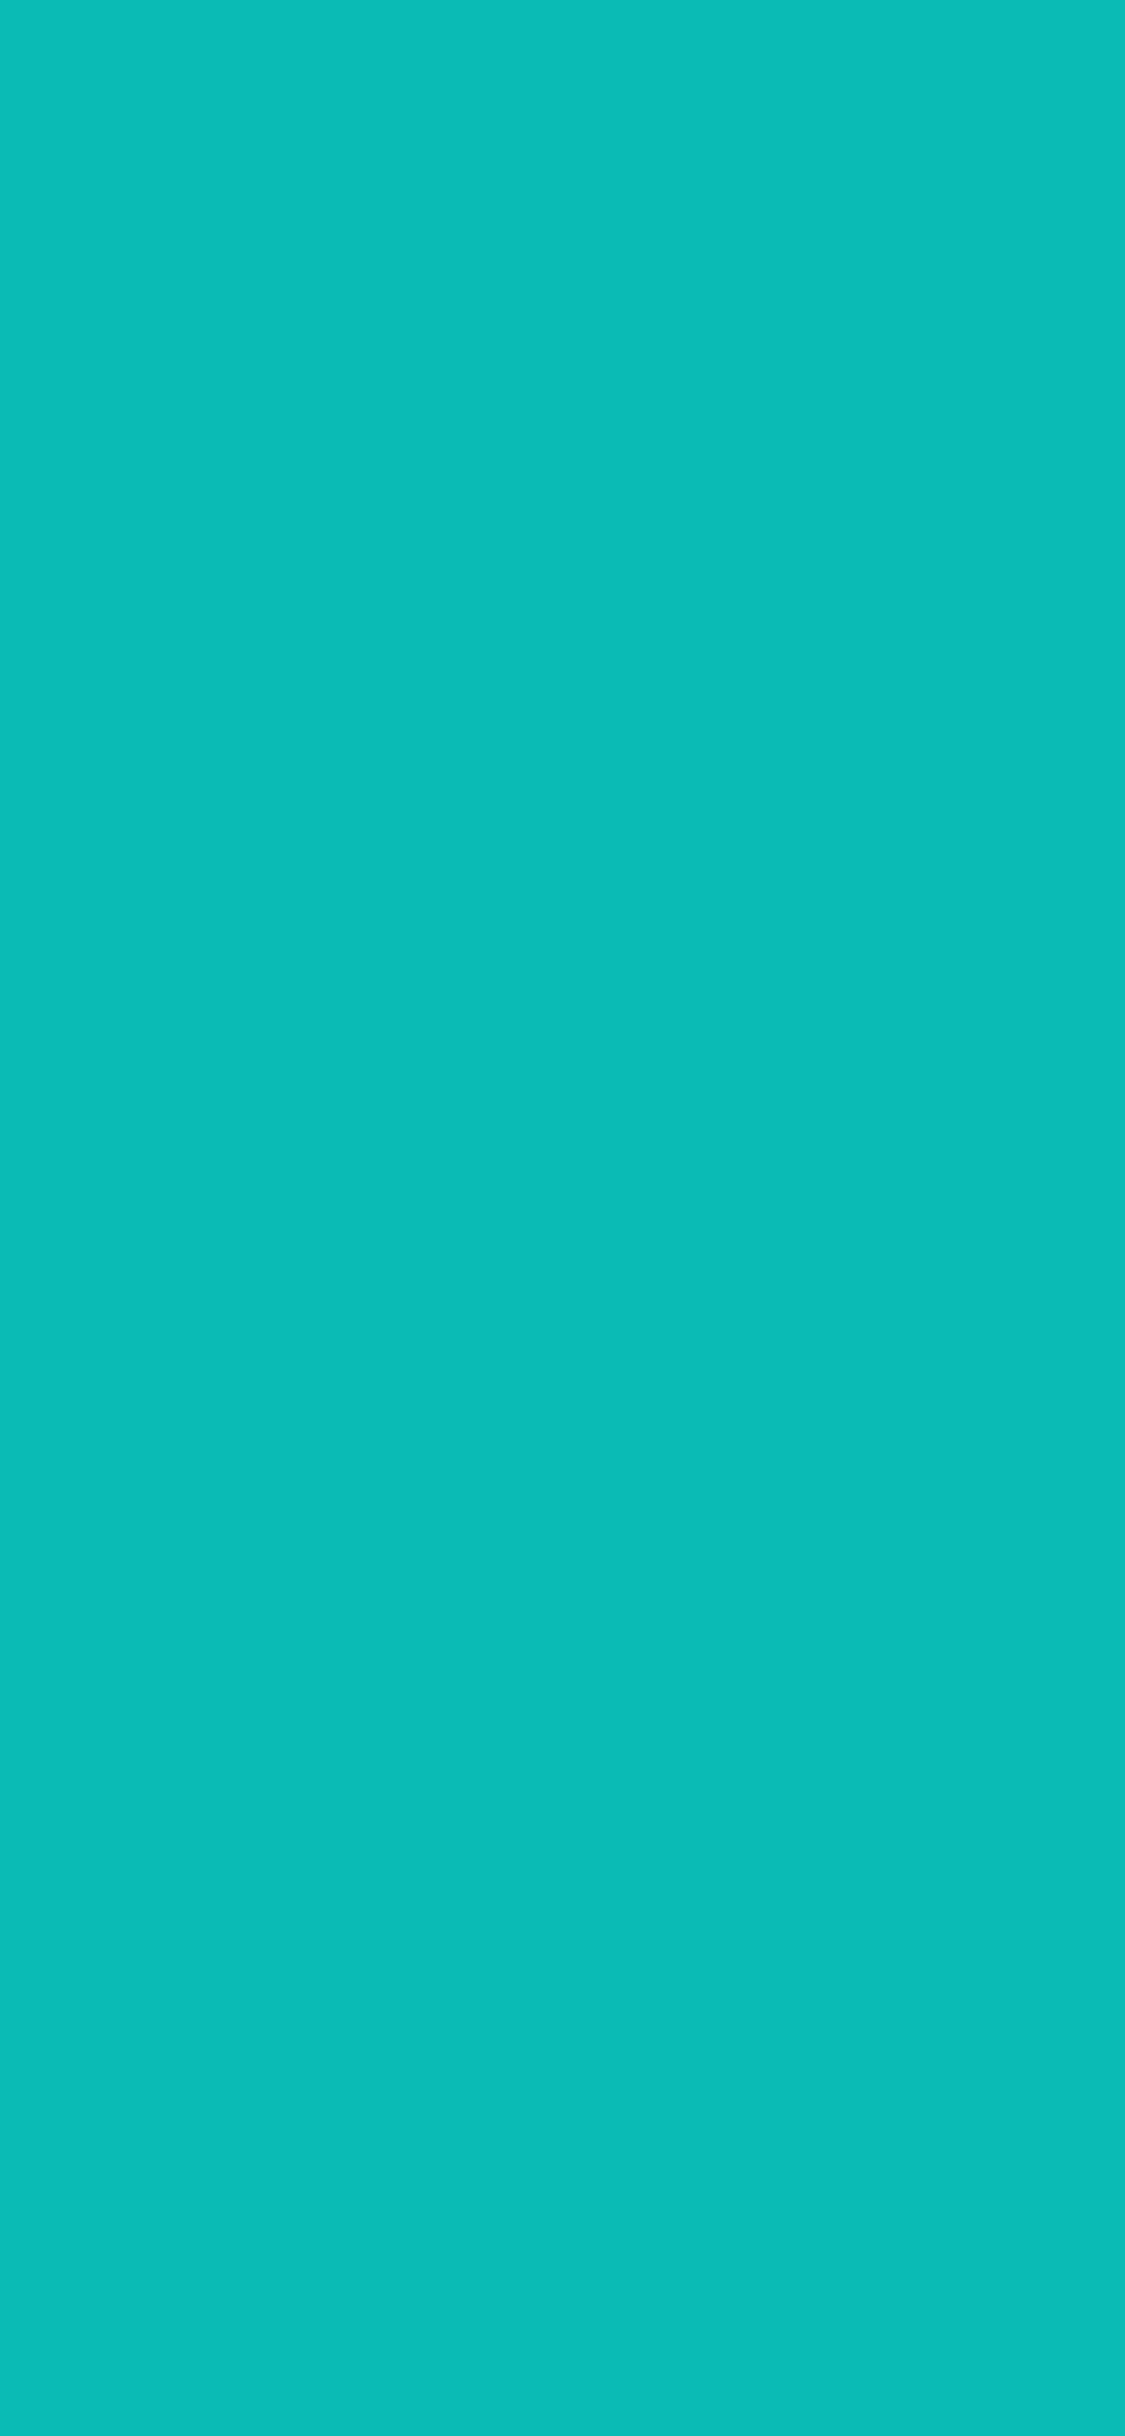 1125x2436 Tiffany Blue Solid Color Background